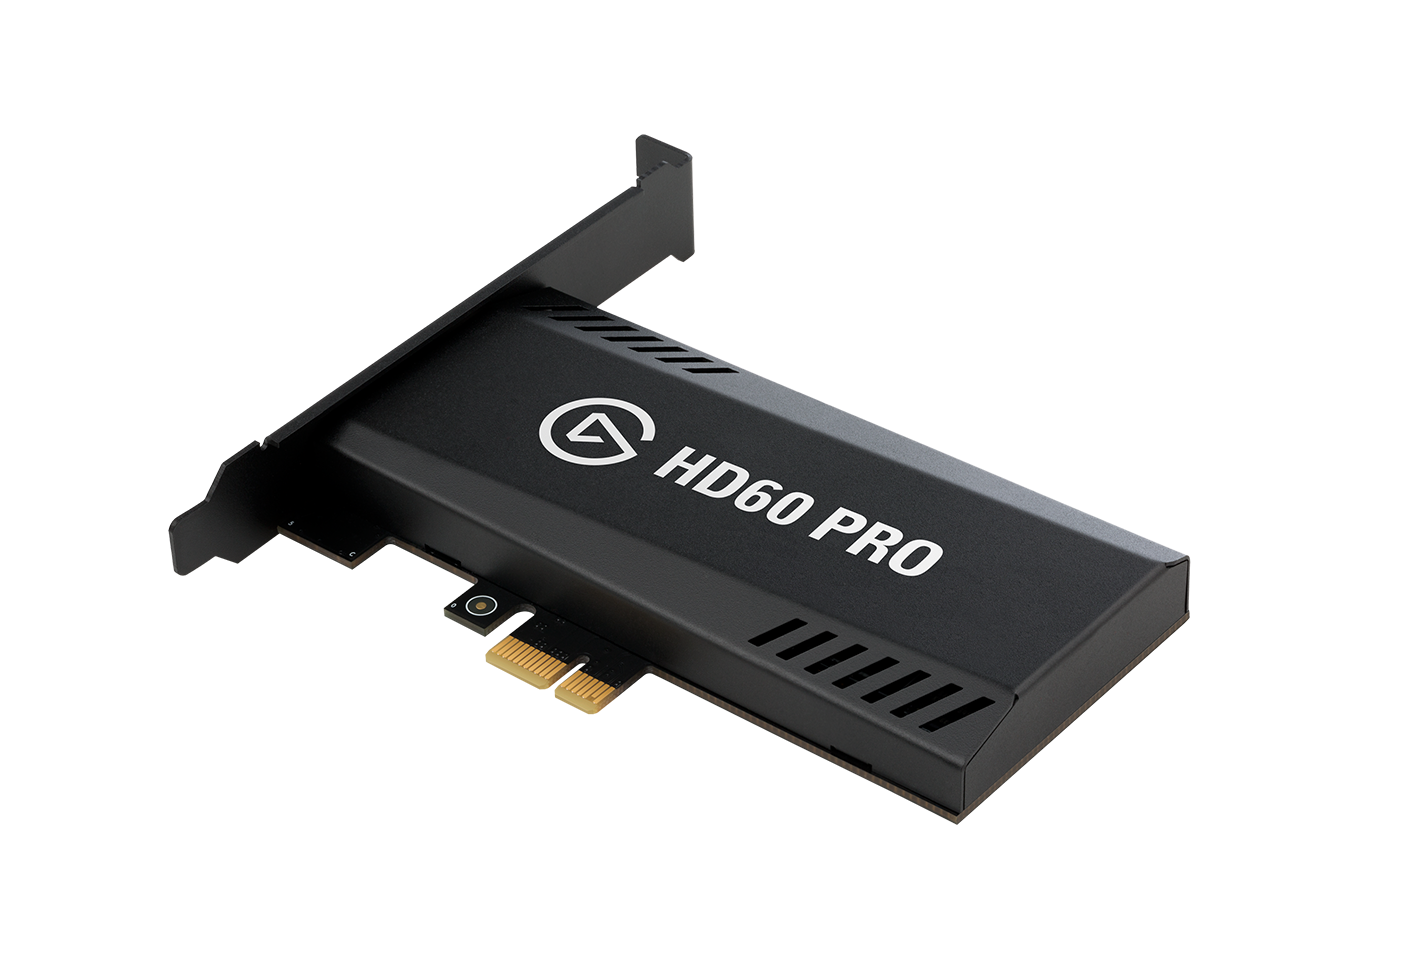 Elgato Game Capture HD60Pro images